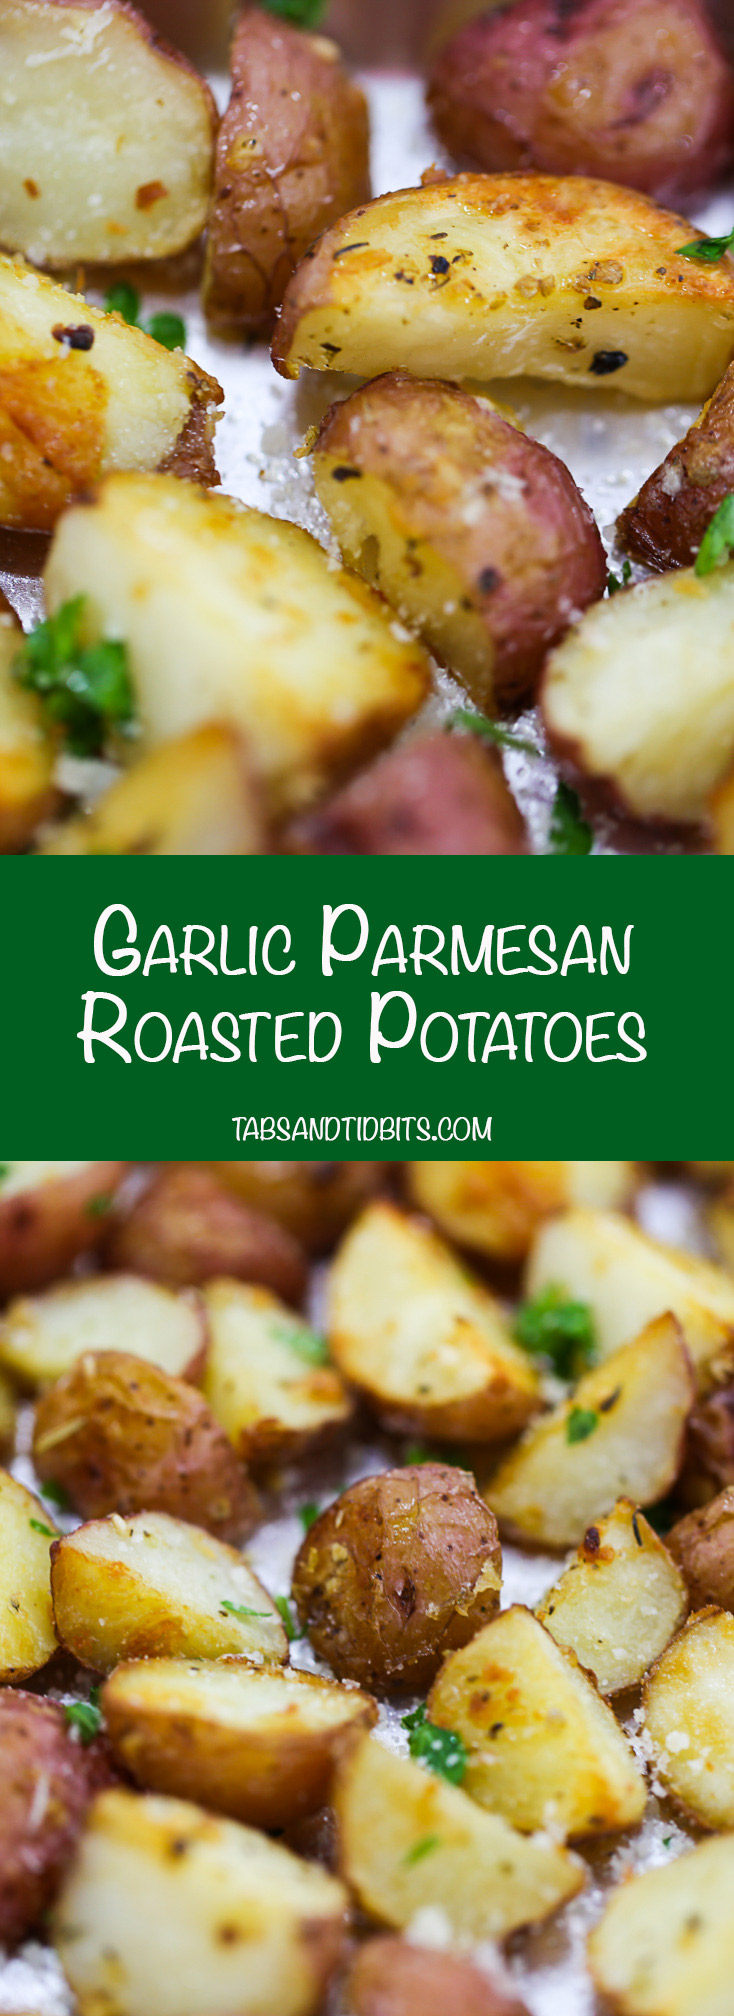 Garlic Parmesan Roasted Potatoes - Perfectly seasoned and crispy oven ...